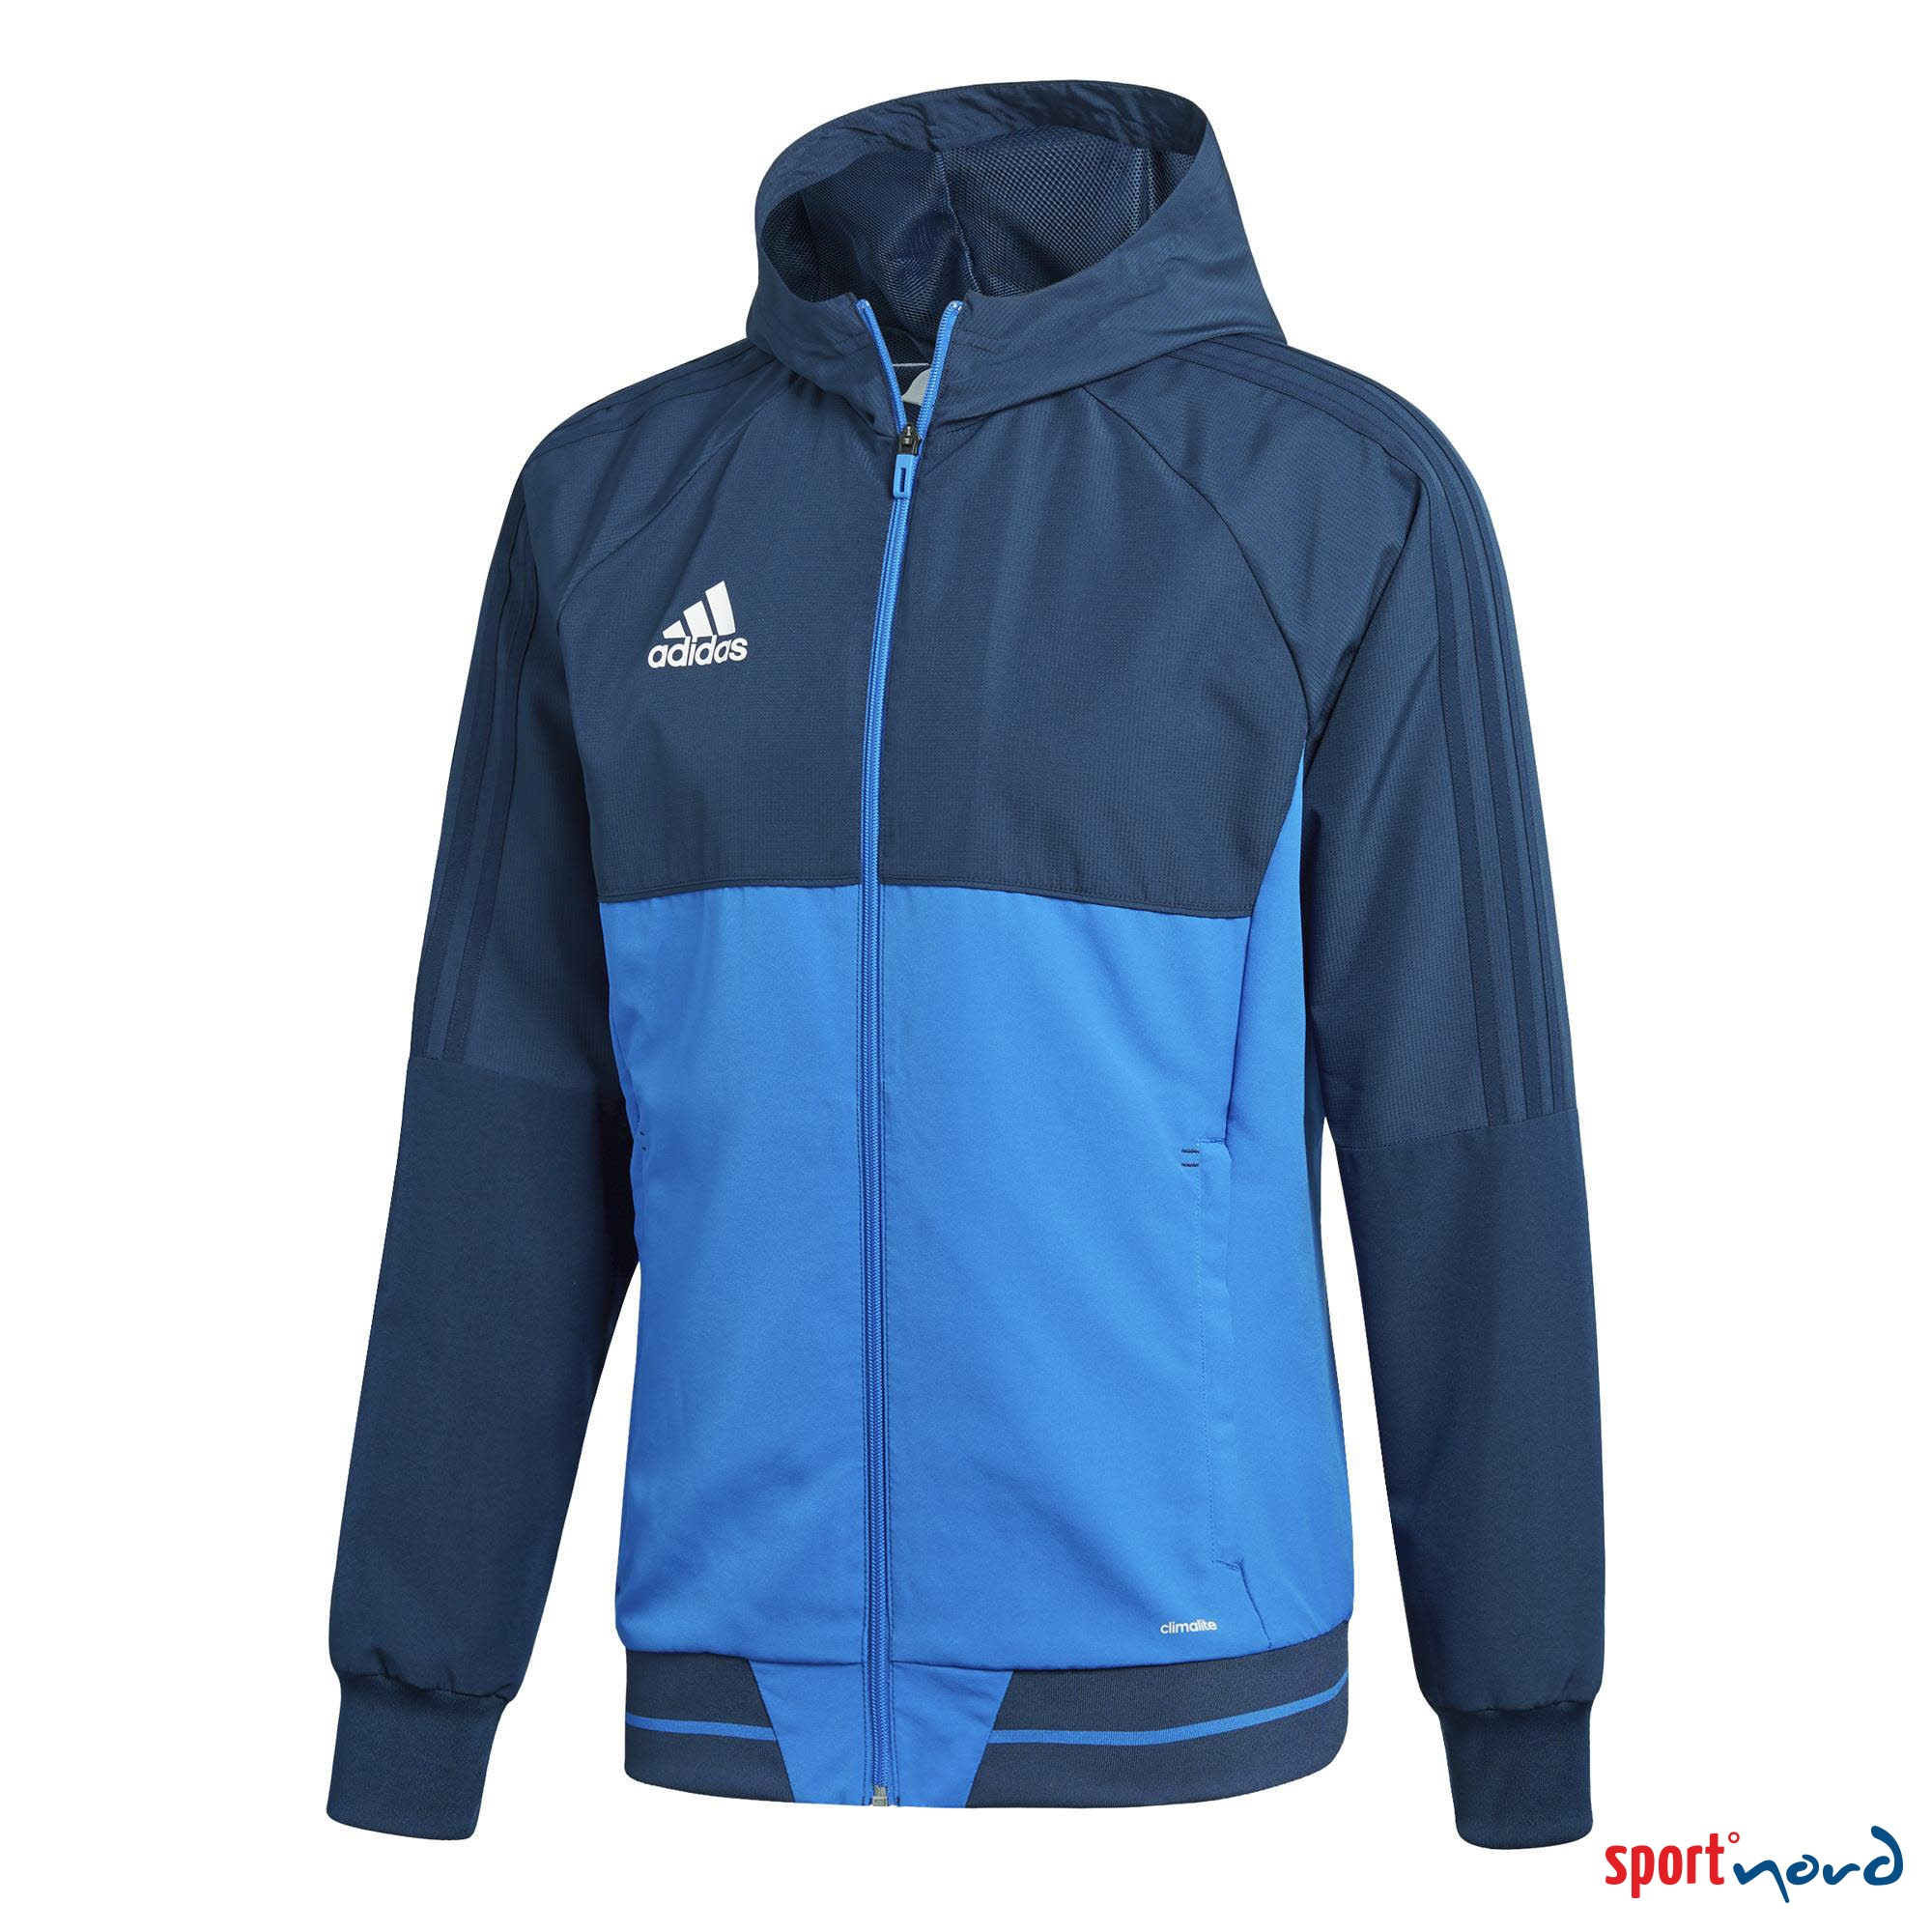 Details about Adidas Kids Tiro 17 Presentation Jacket Top Climalite New